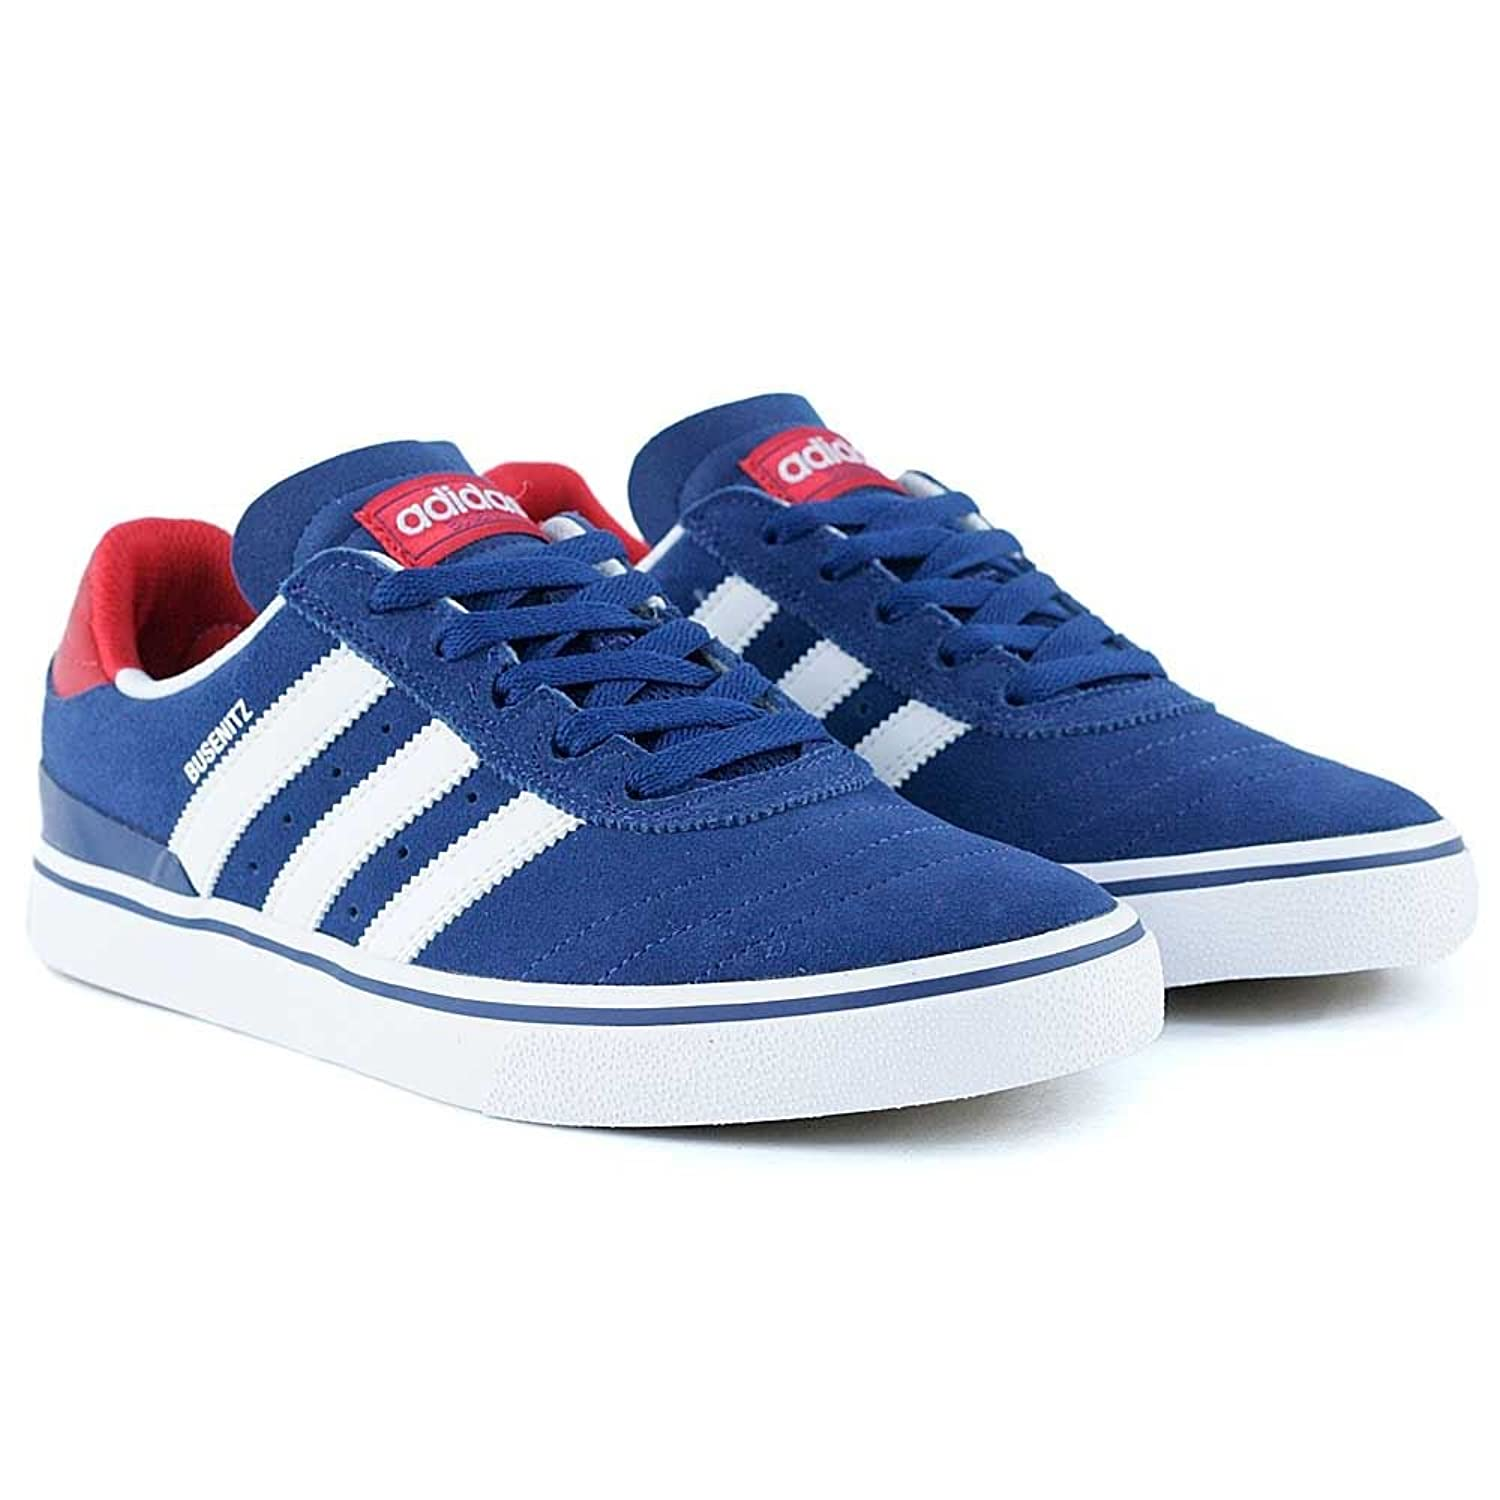 benny fairfax adidas shoes